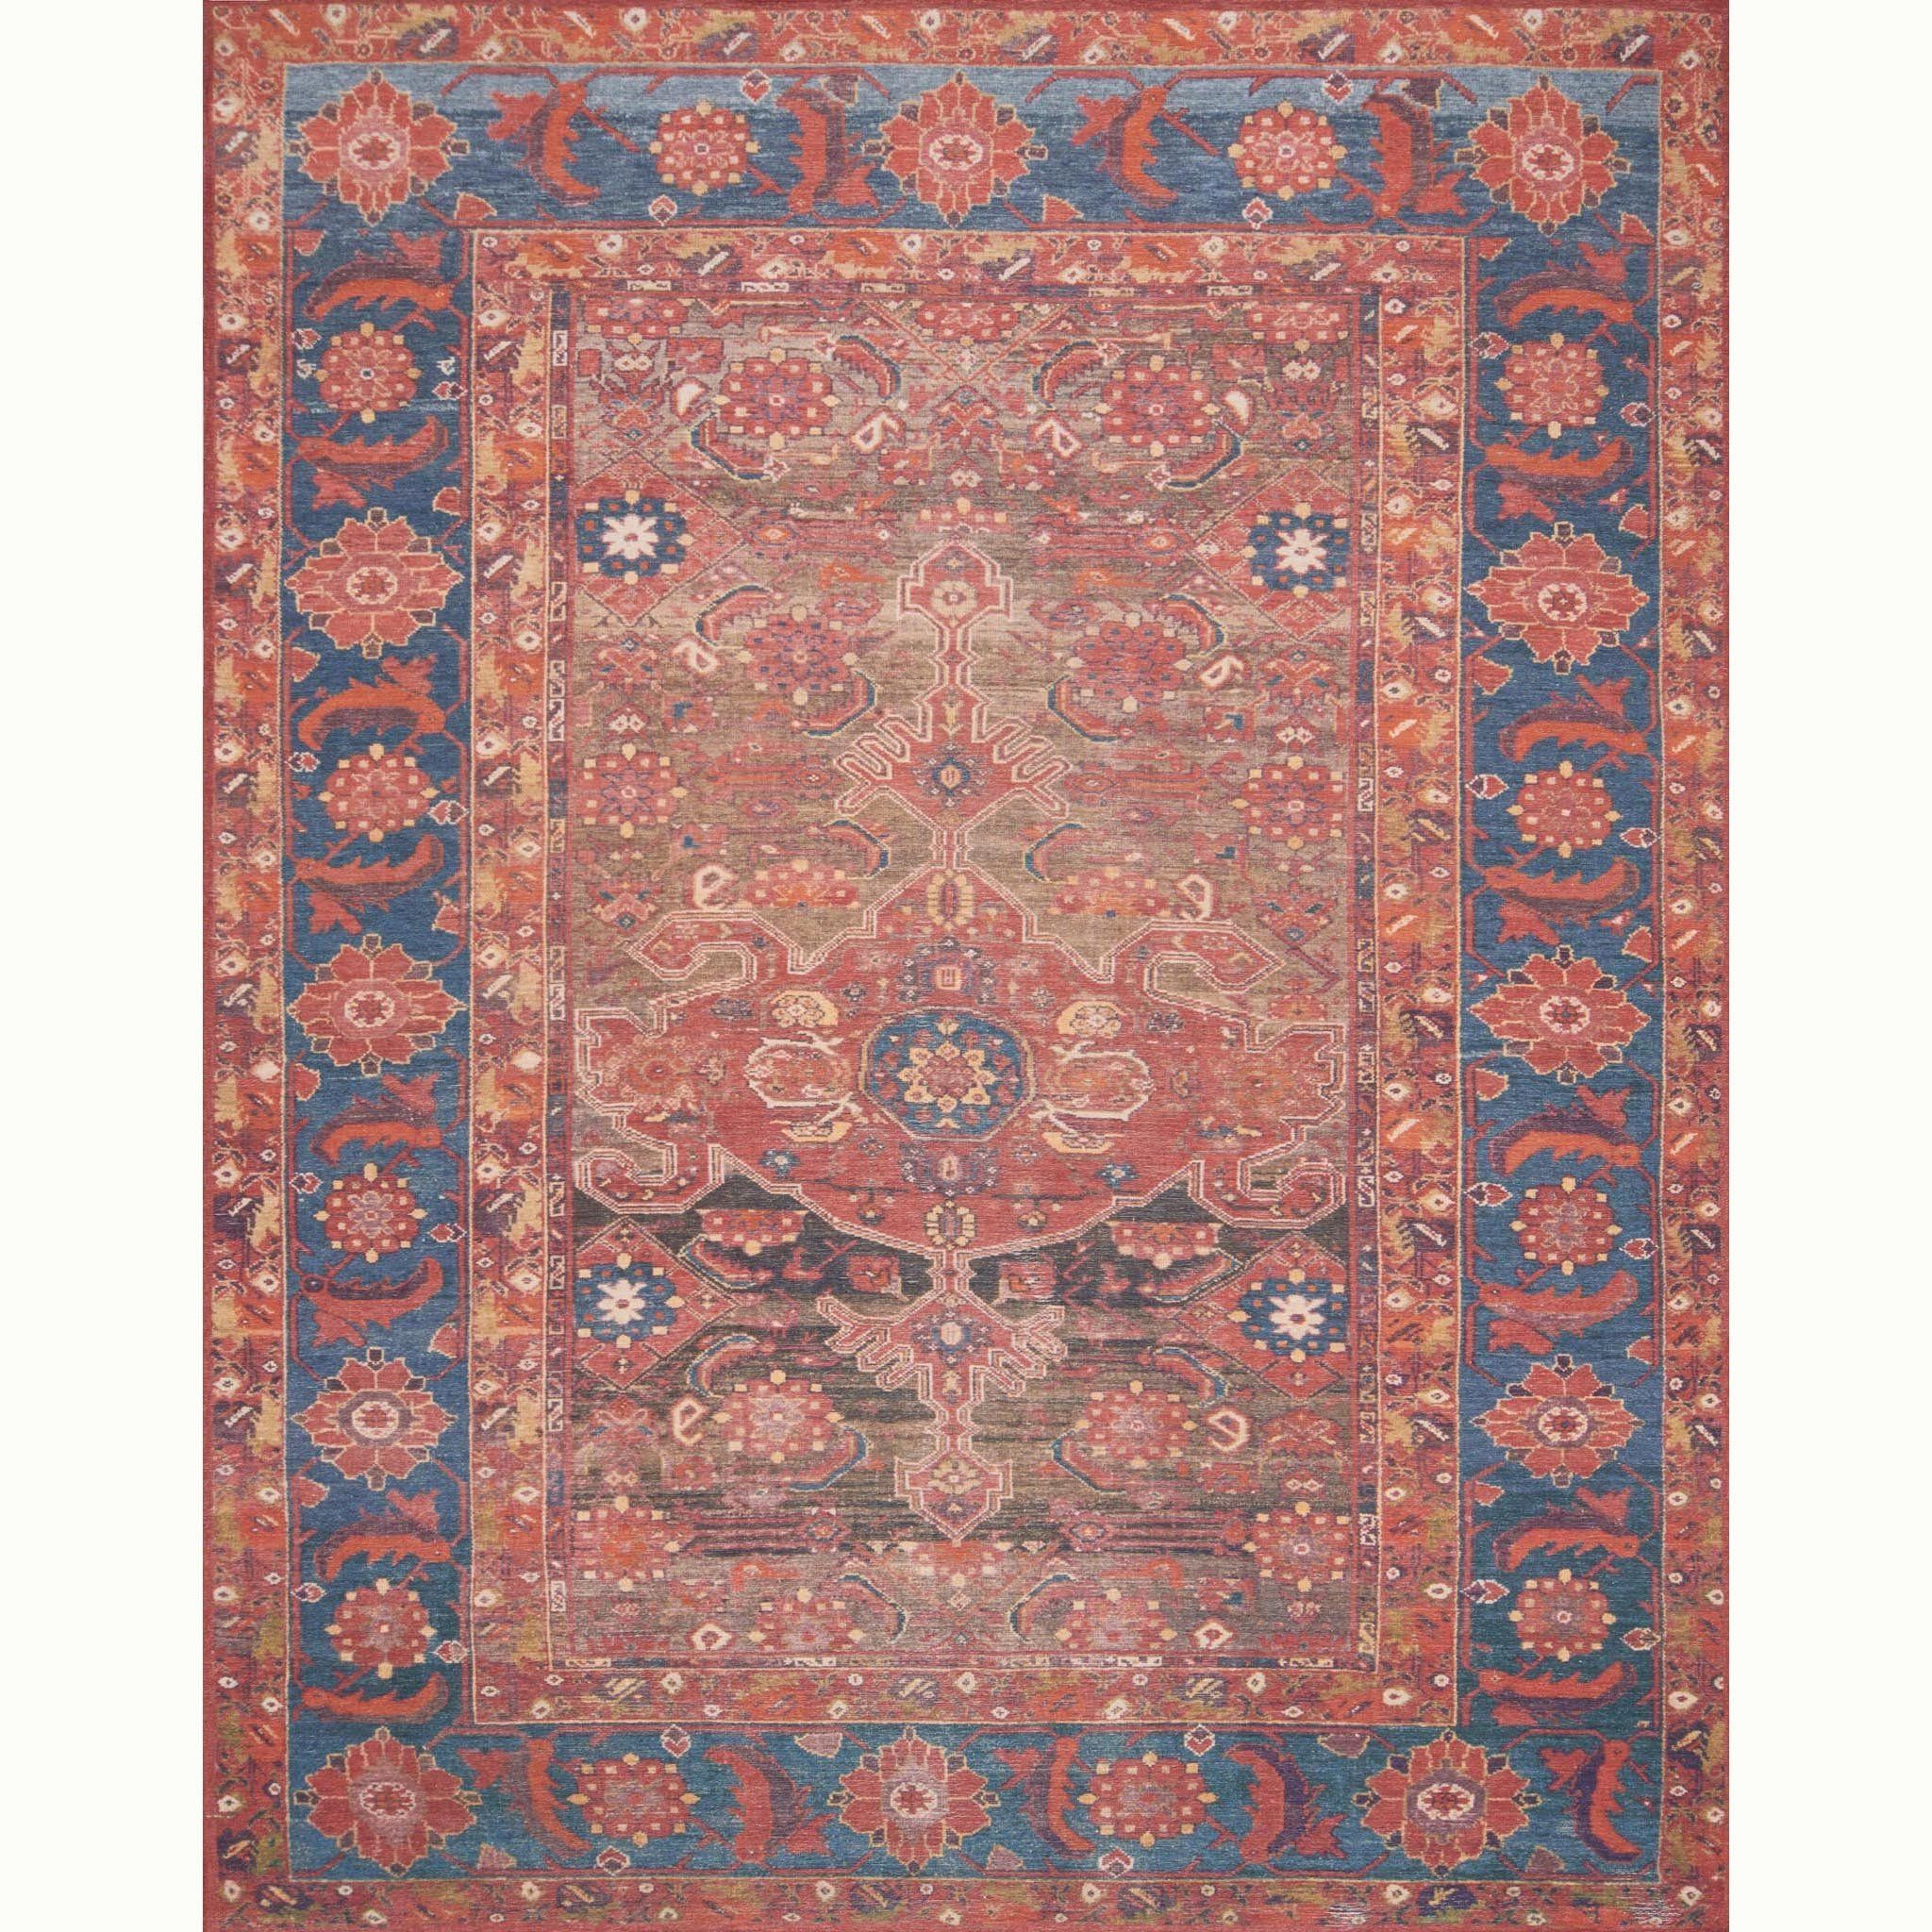 Lucca Rust Blue Rug Magnolia Market Joanna Gaines Created Using The Most Advanced Making Technology Coveted Look Of Rich Reds Deep Blues